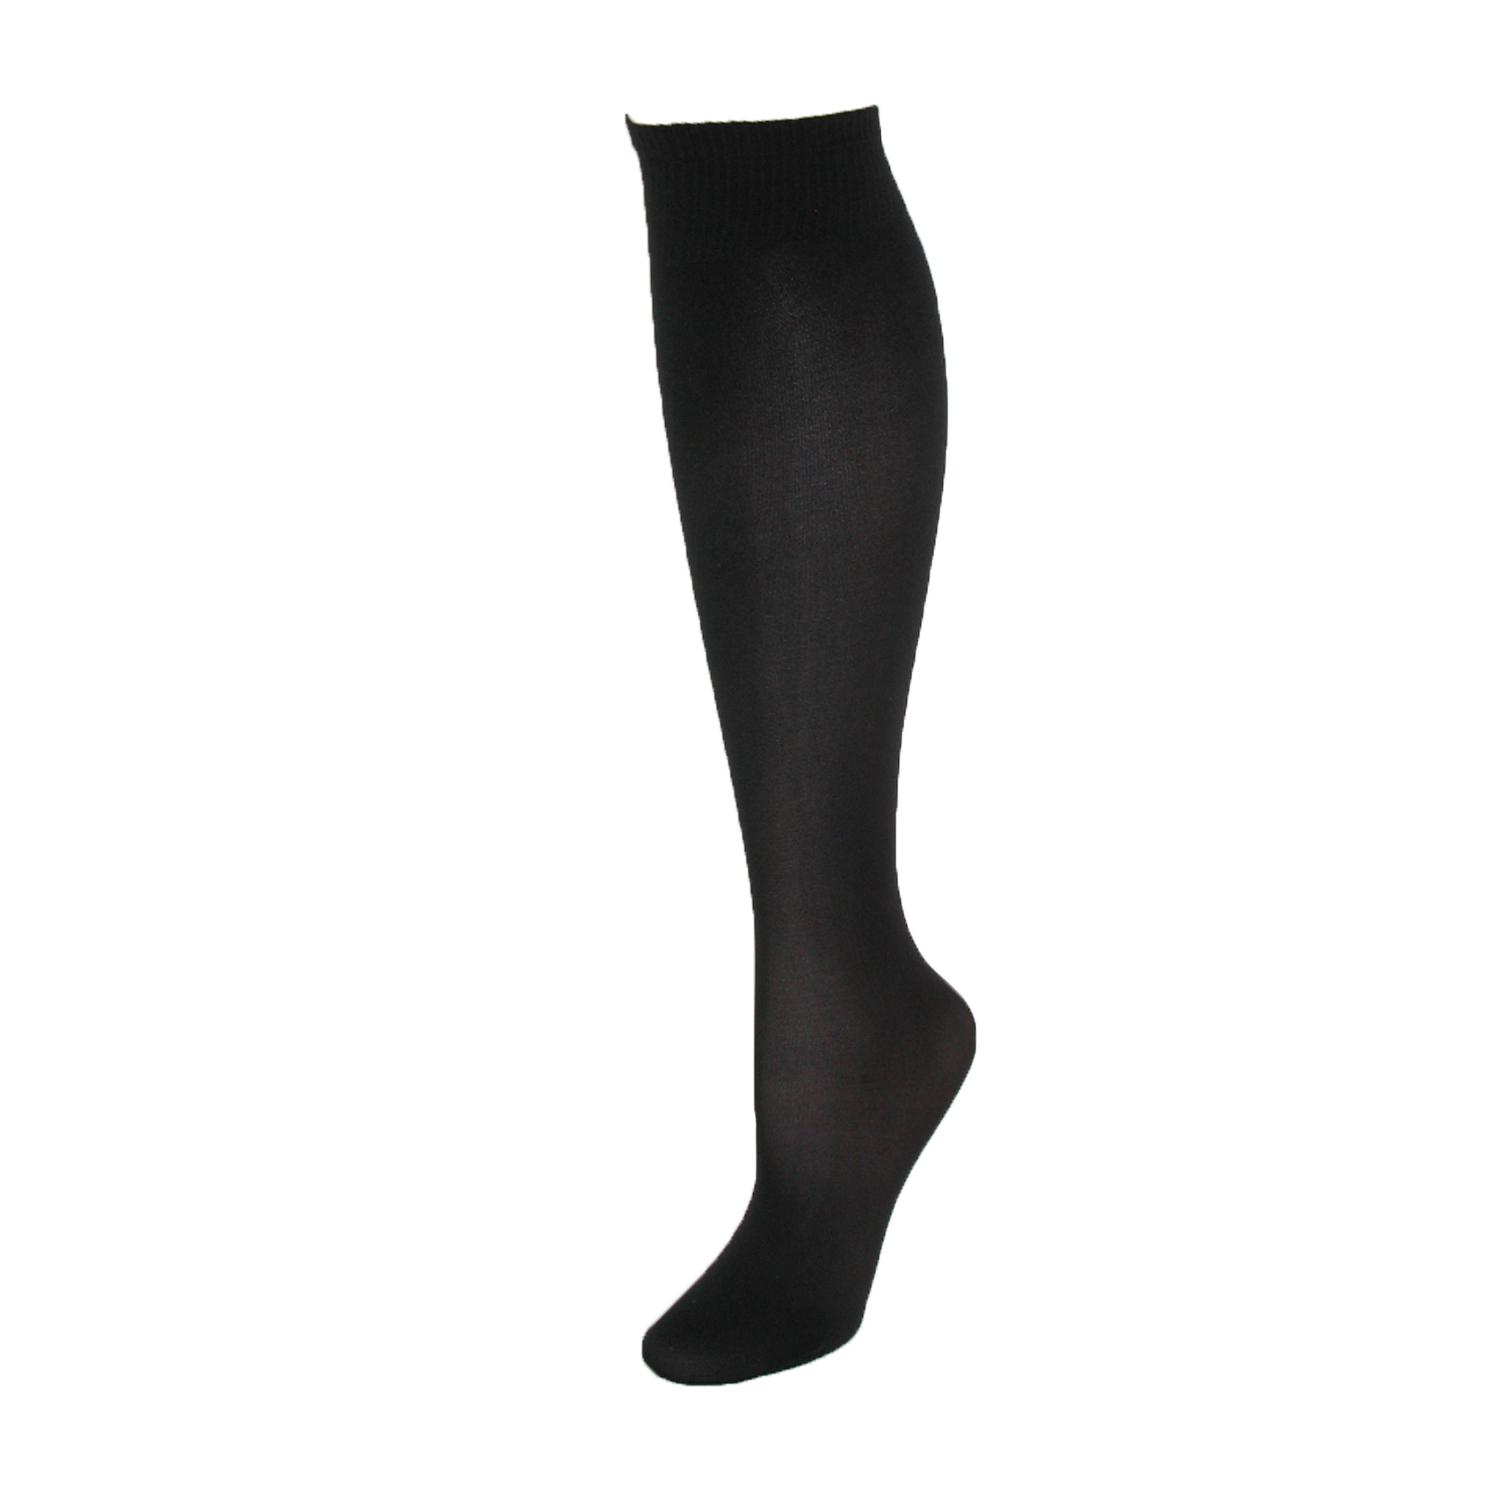 Jefferies Socks Womens Nylon Trouser Socks With Wide Top